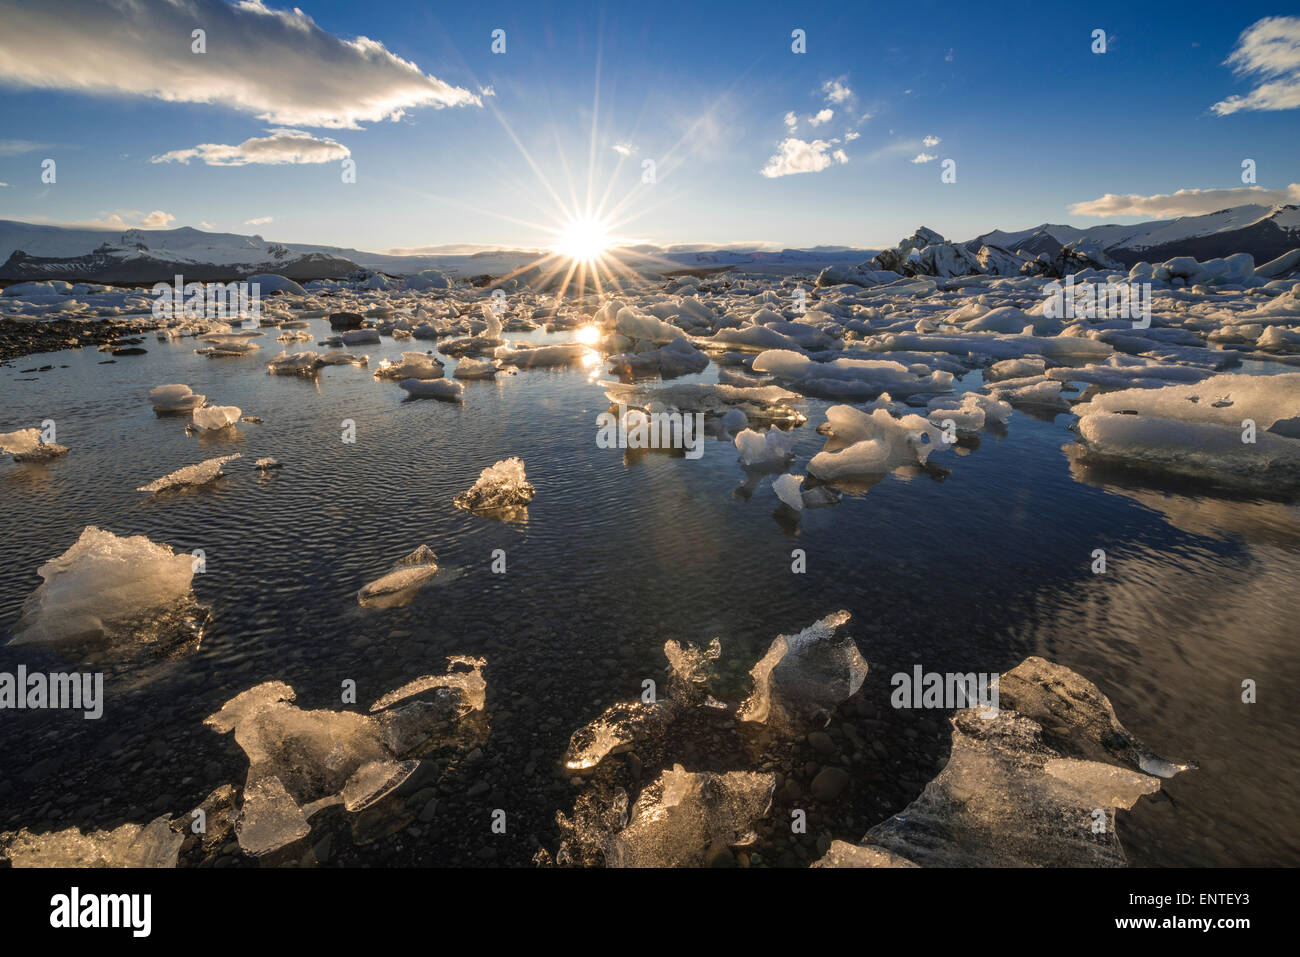 Iceland, Jokulsarlon Lagoon, Vatnajokull National Park at Sunset - Stock Image